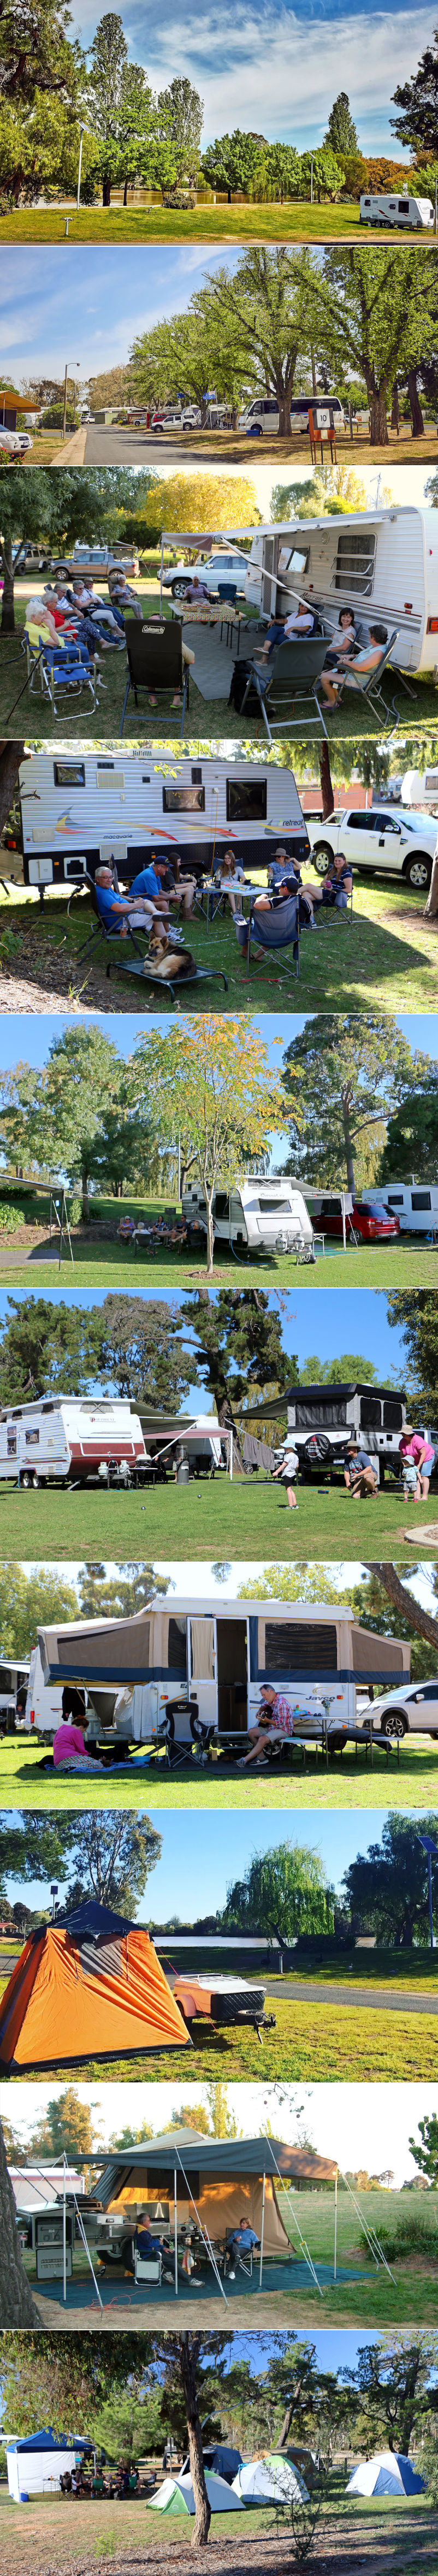 Maryborough Caravan Park - Sites